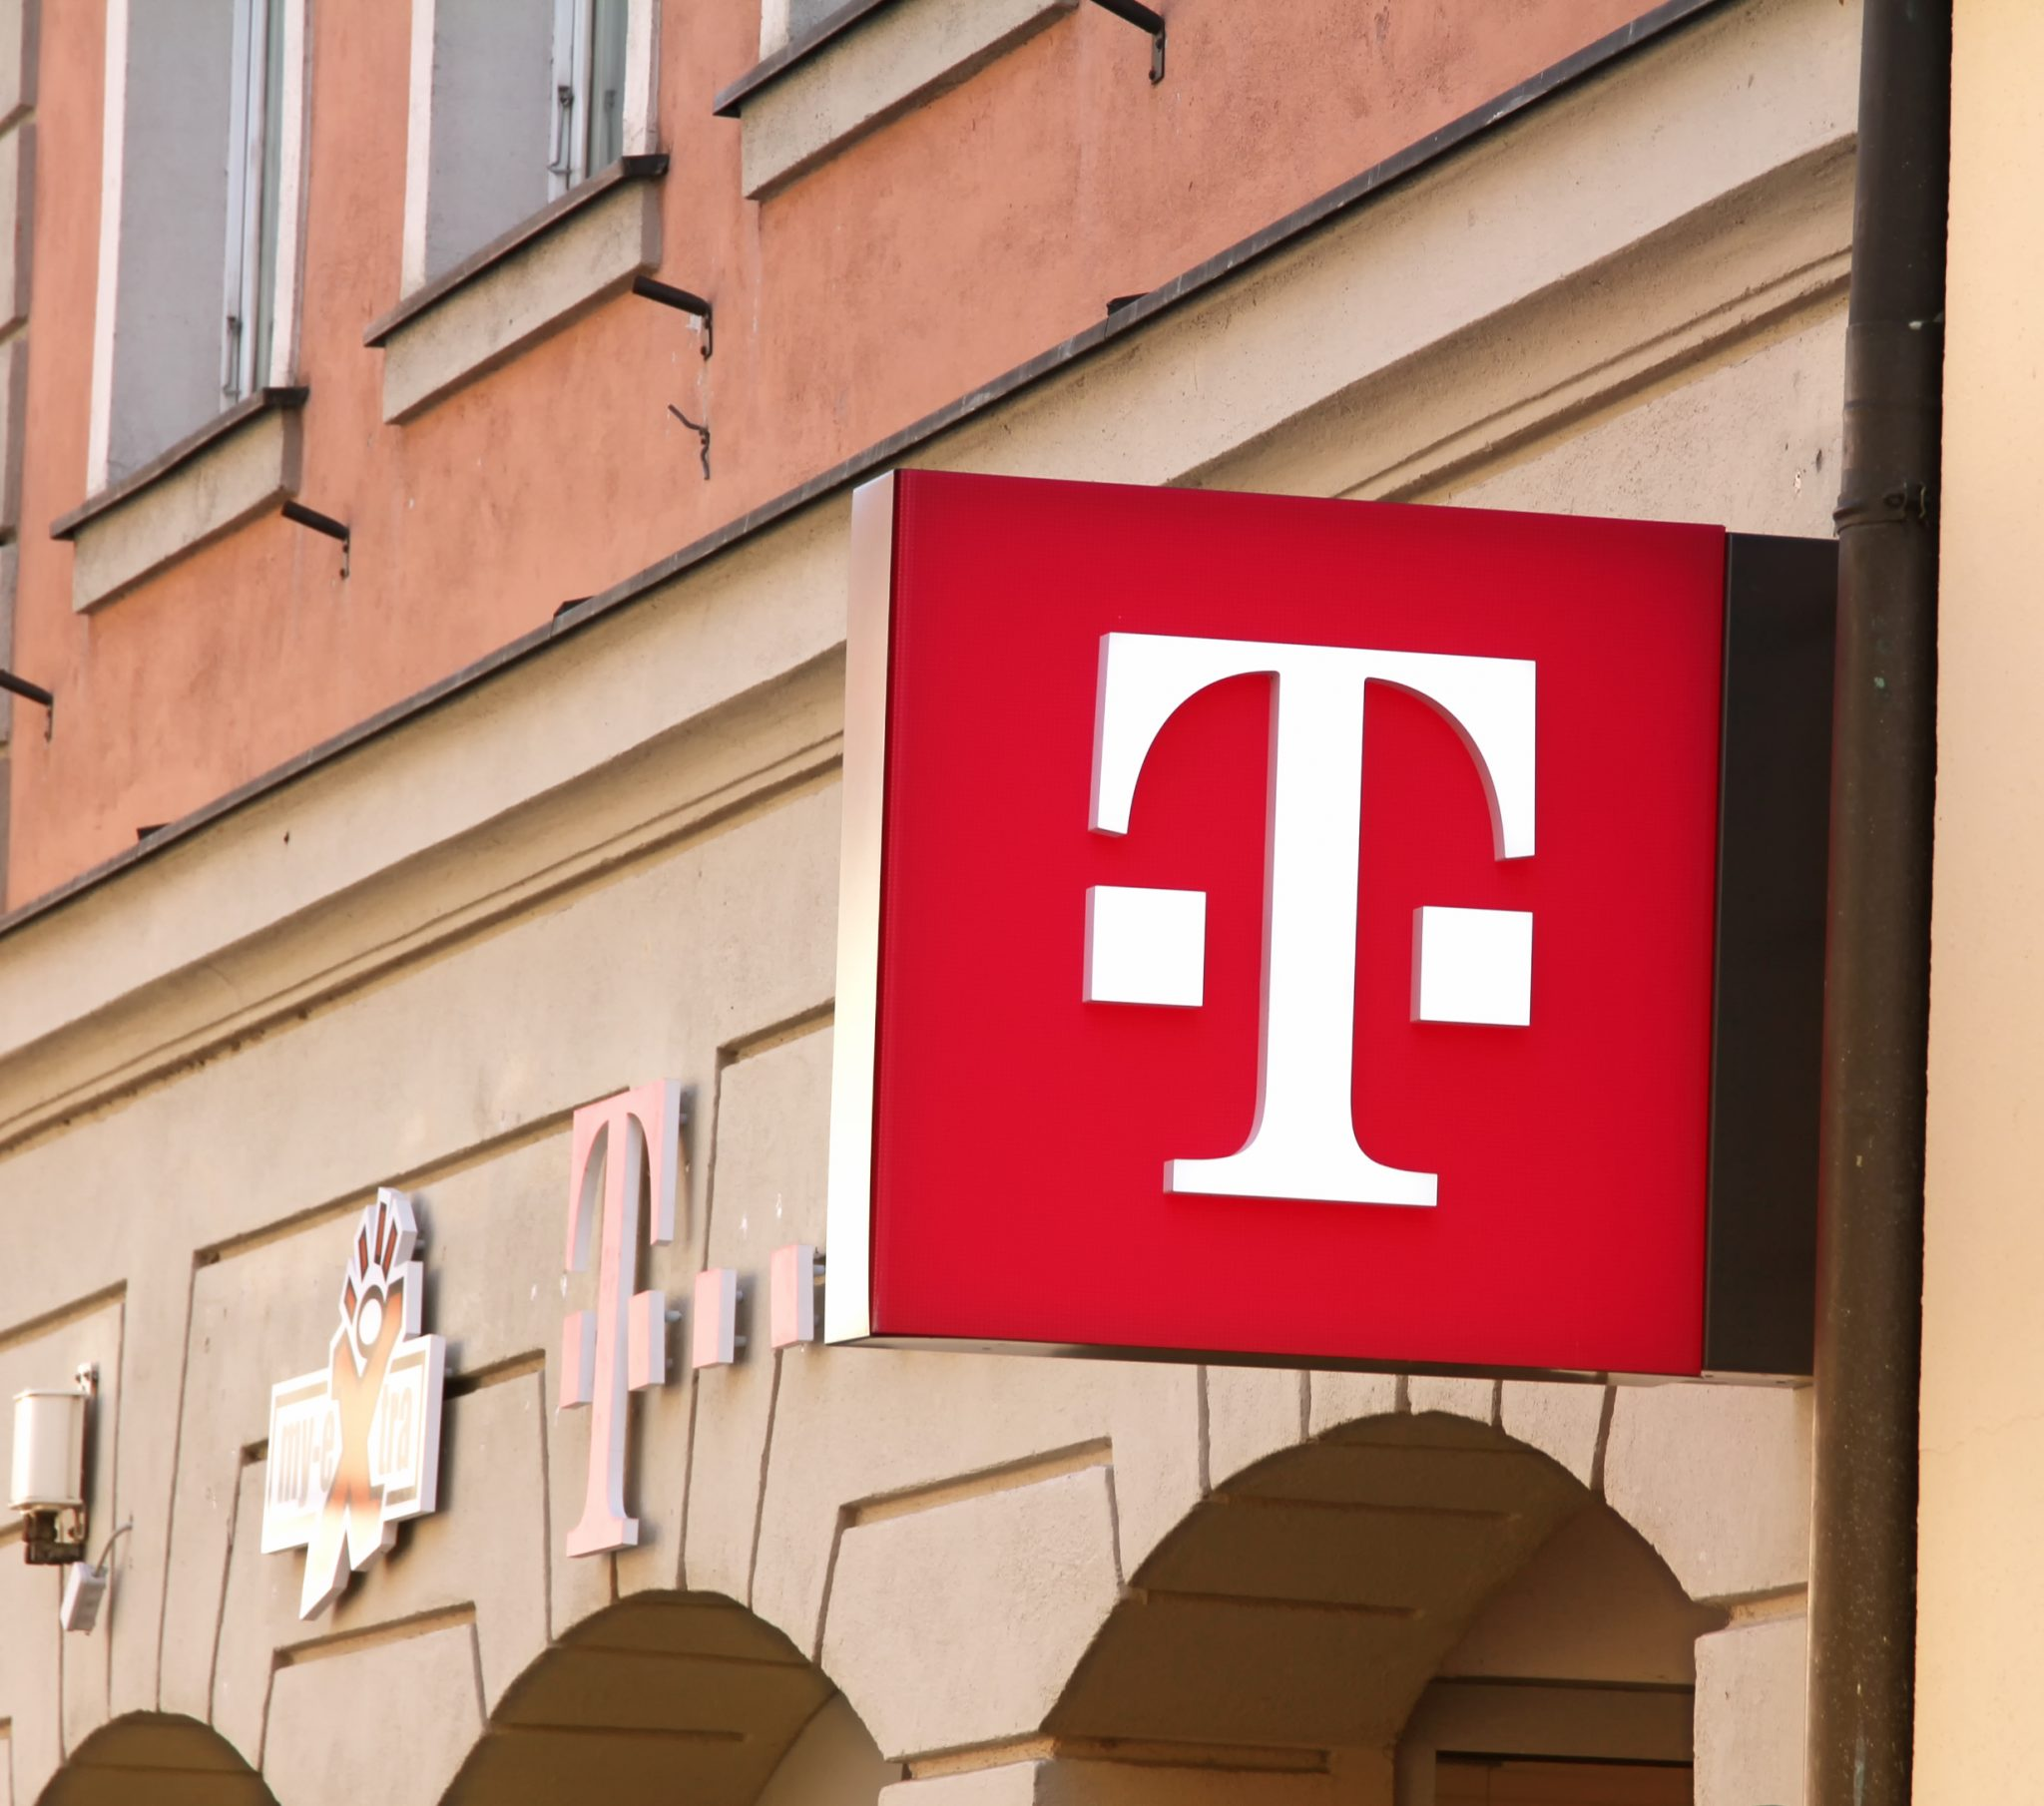 Ansbach, Germany : T-Mobile is the brand name used by the mobile communications subsidiaries of the German telecommunications company Deutsche Telekom.